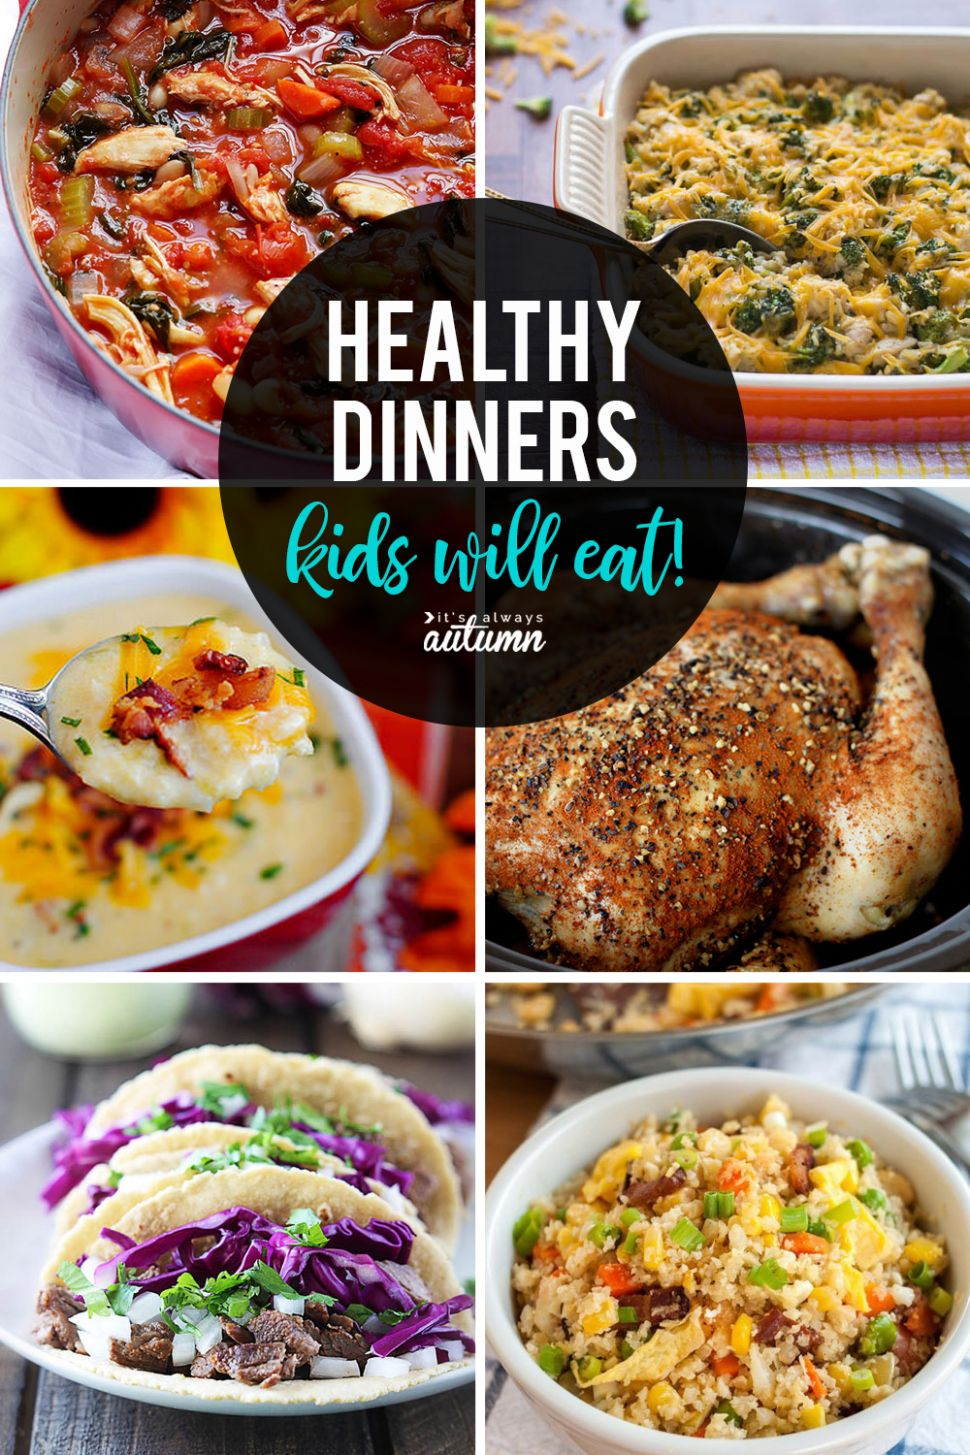 10 healthy easy recipes your kids will actually want to eat - It's ...